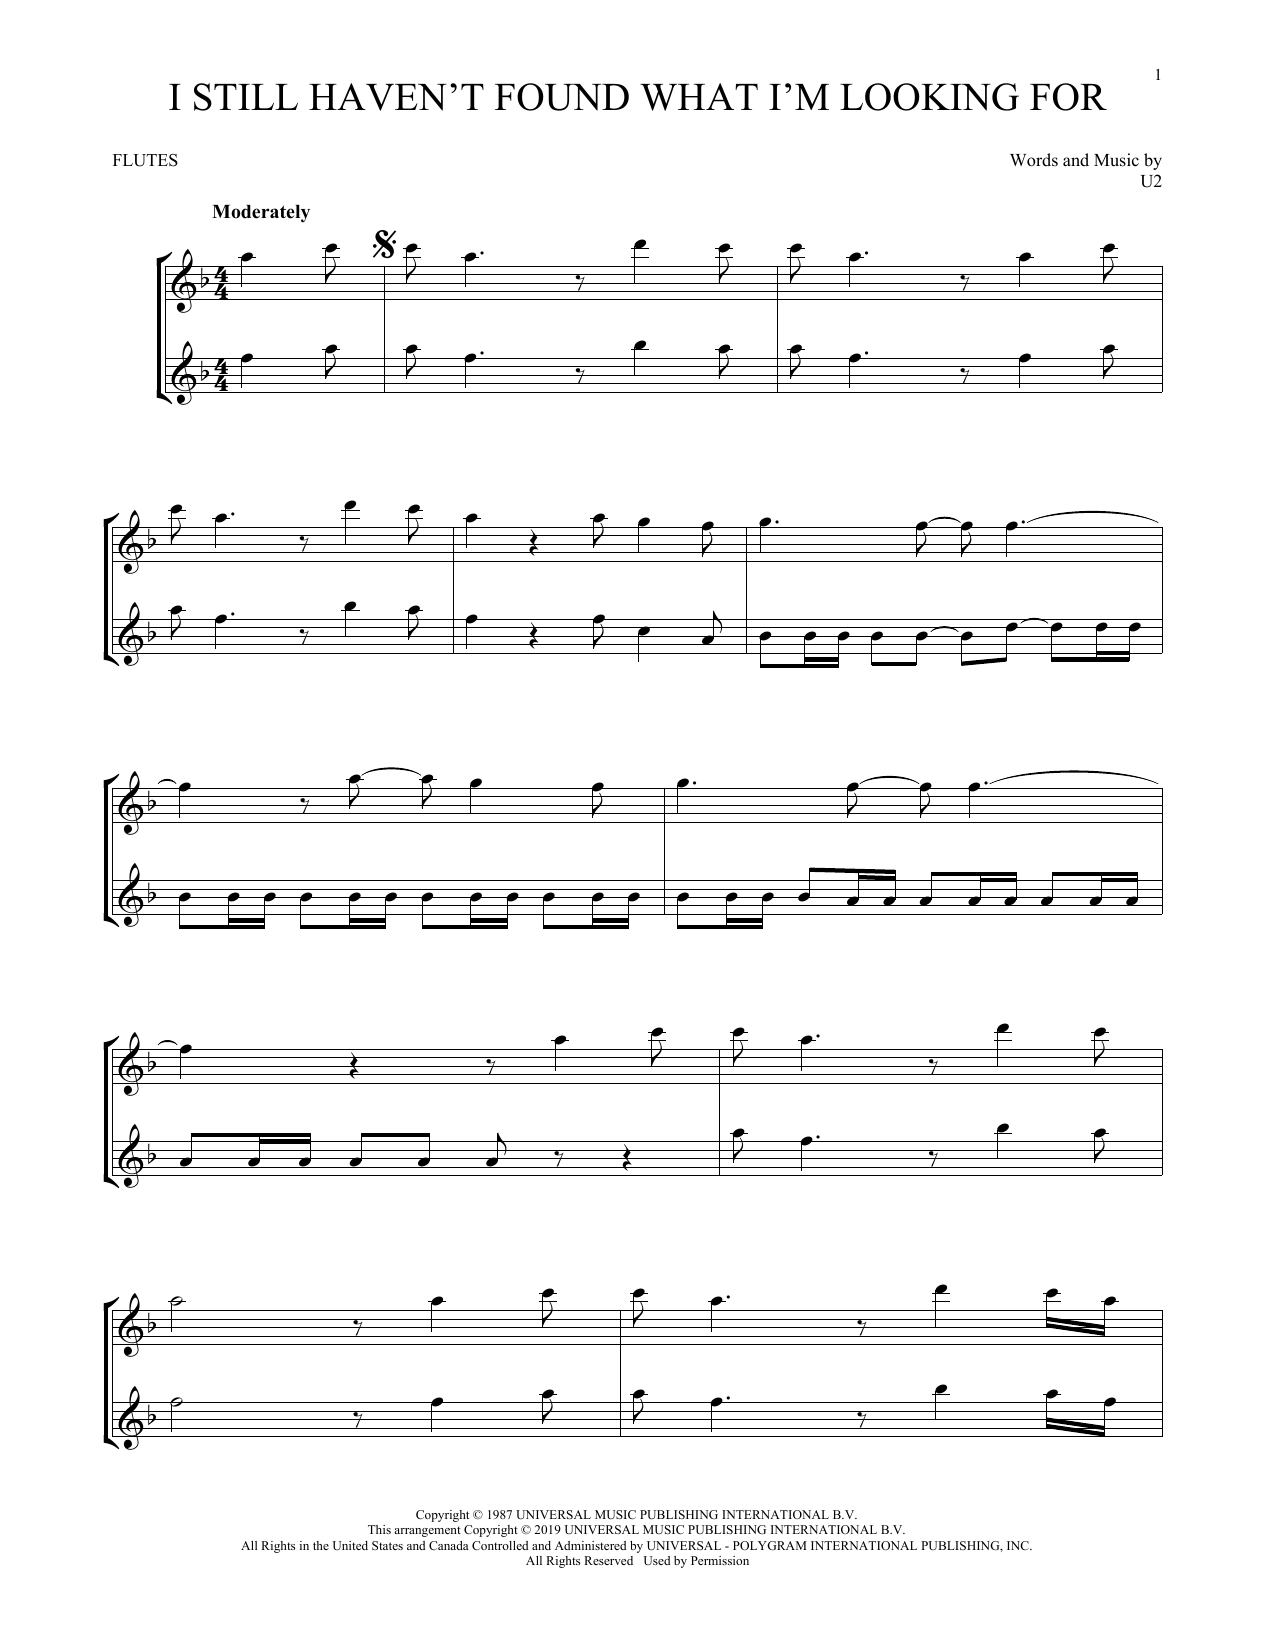 I Still Haven't Found What I'm Looking For (Flute Duet)